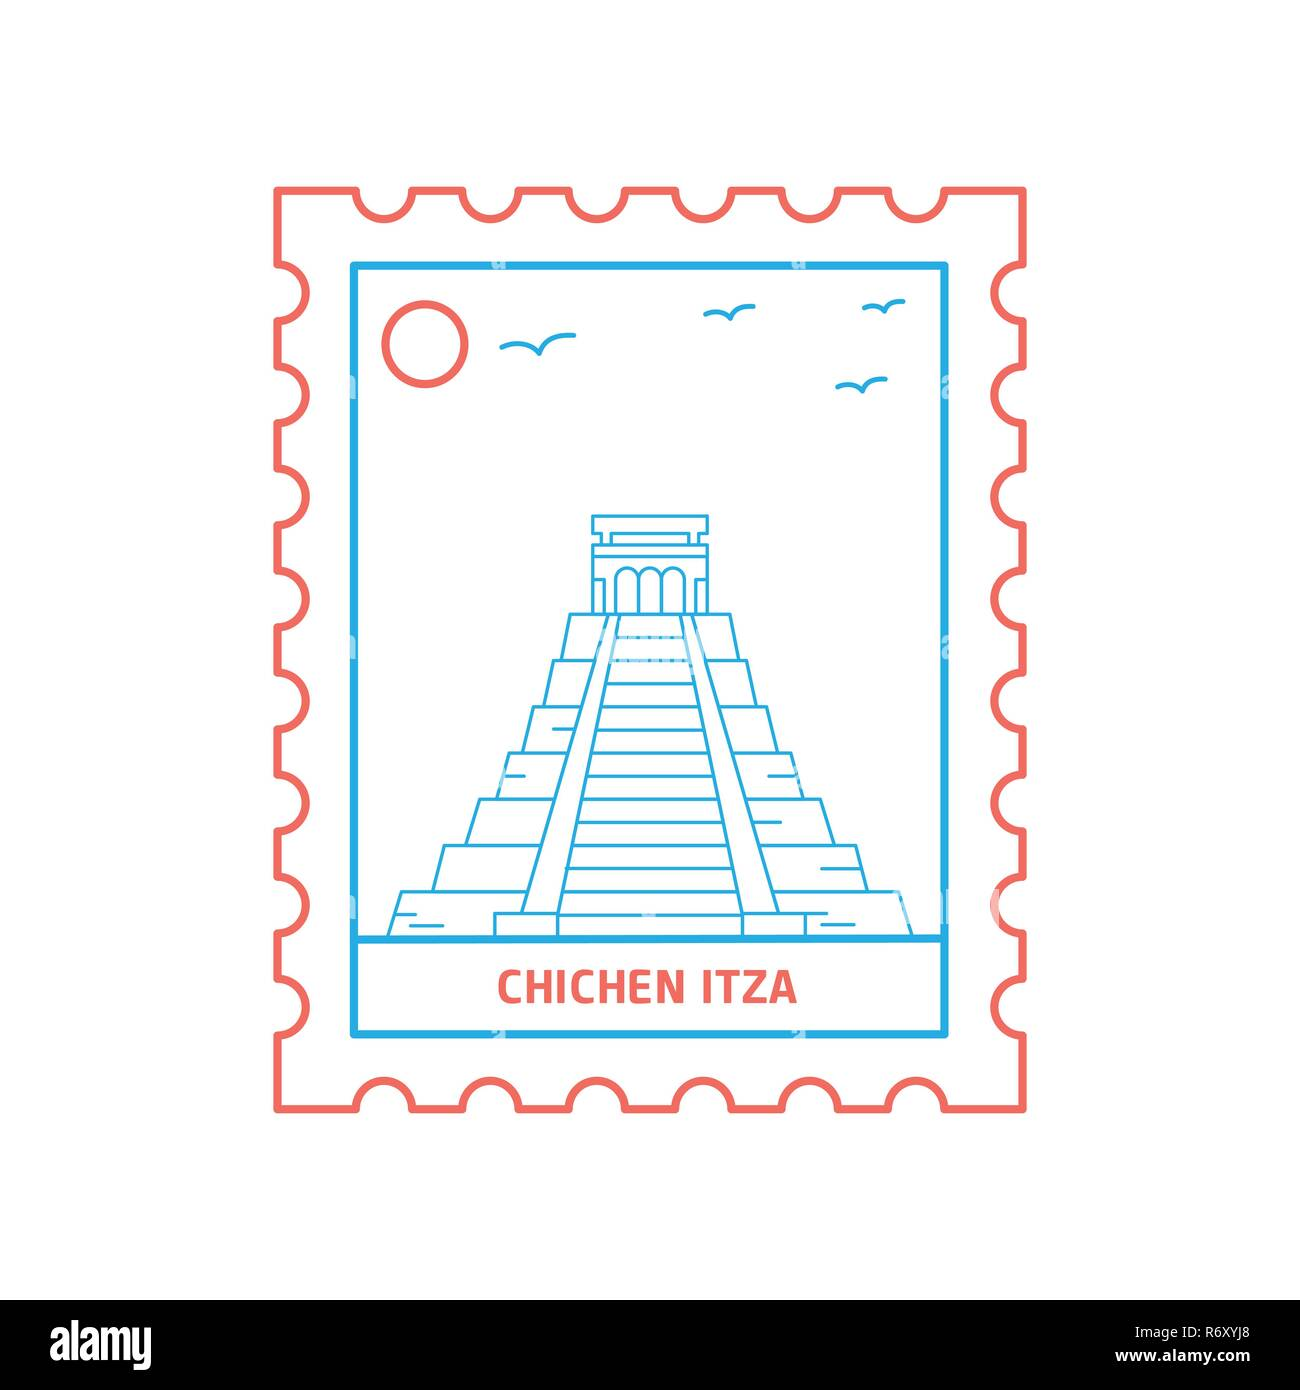 CHICHEN ITZA postage stamp Blue and red Line Style, vector illustration - Stock Image